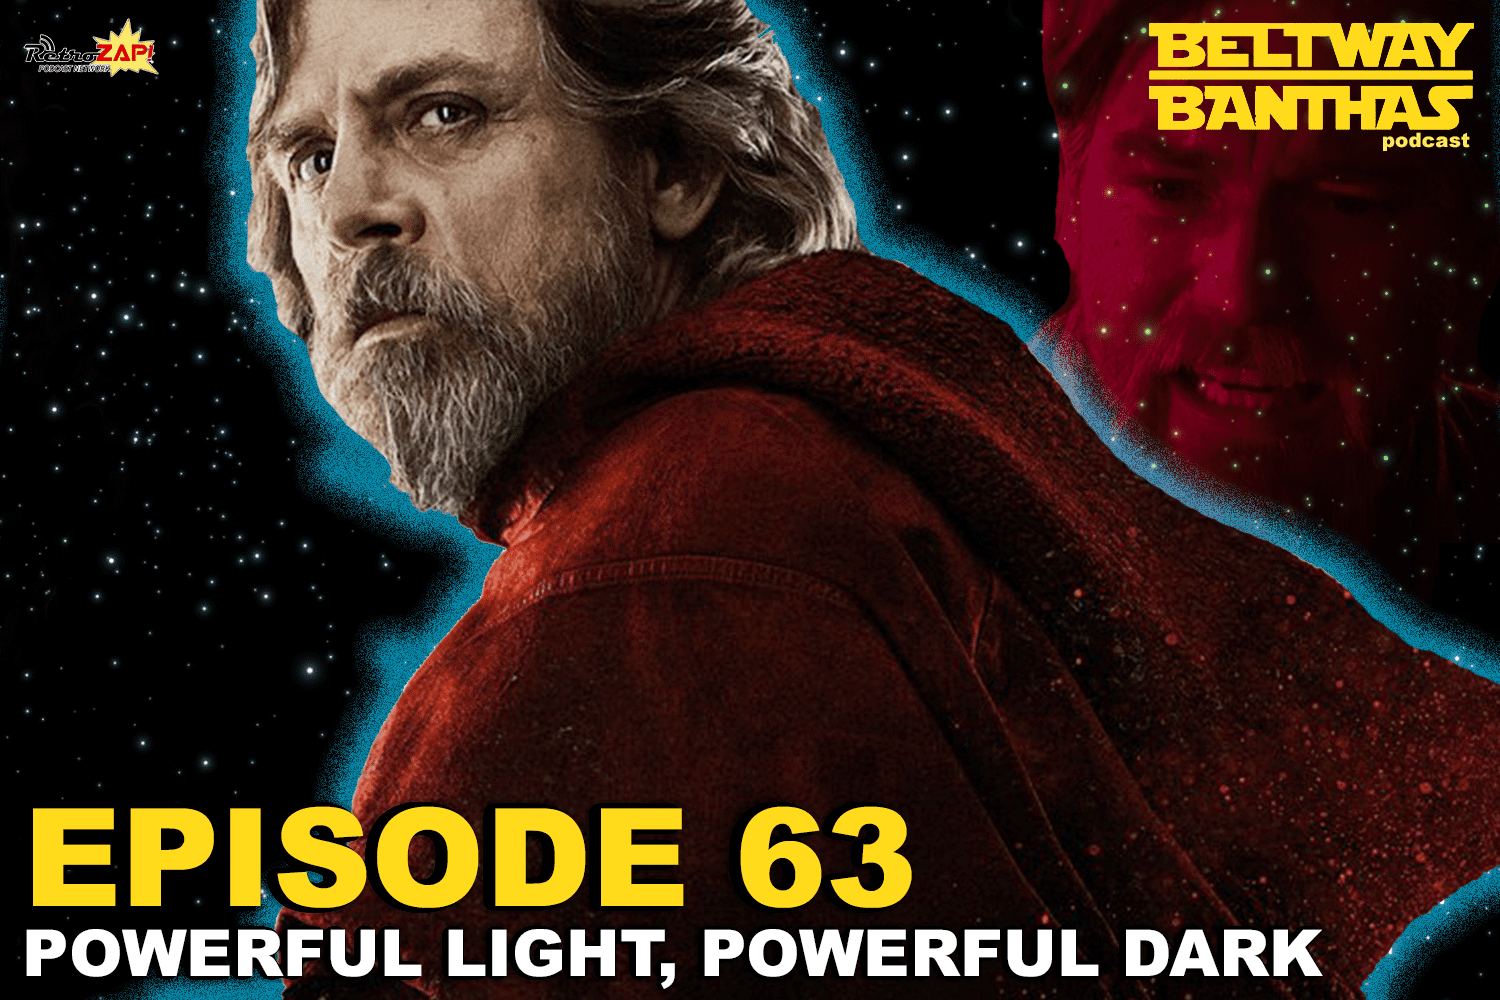 Beltway Banthas #63: Powerful Light Powerful Dark